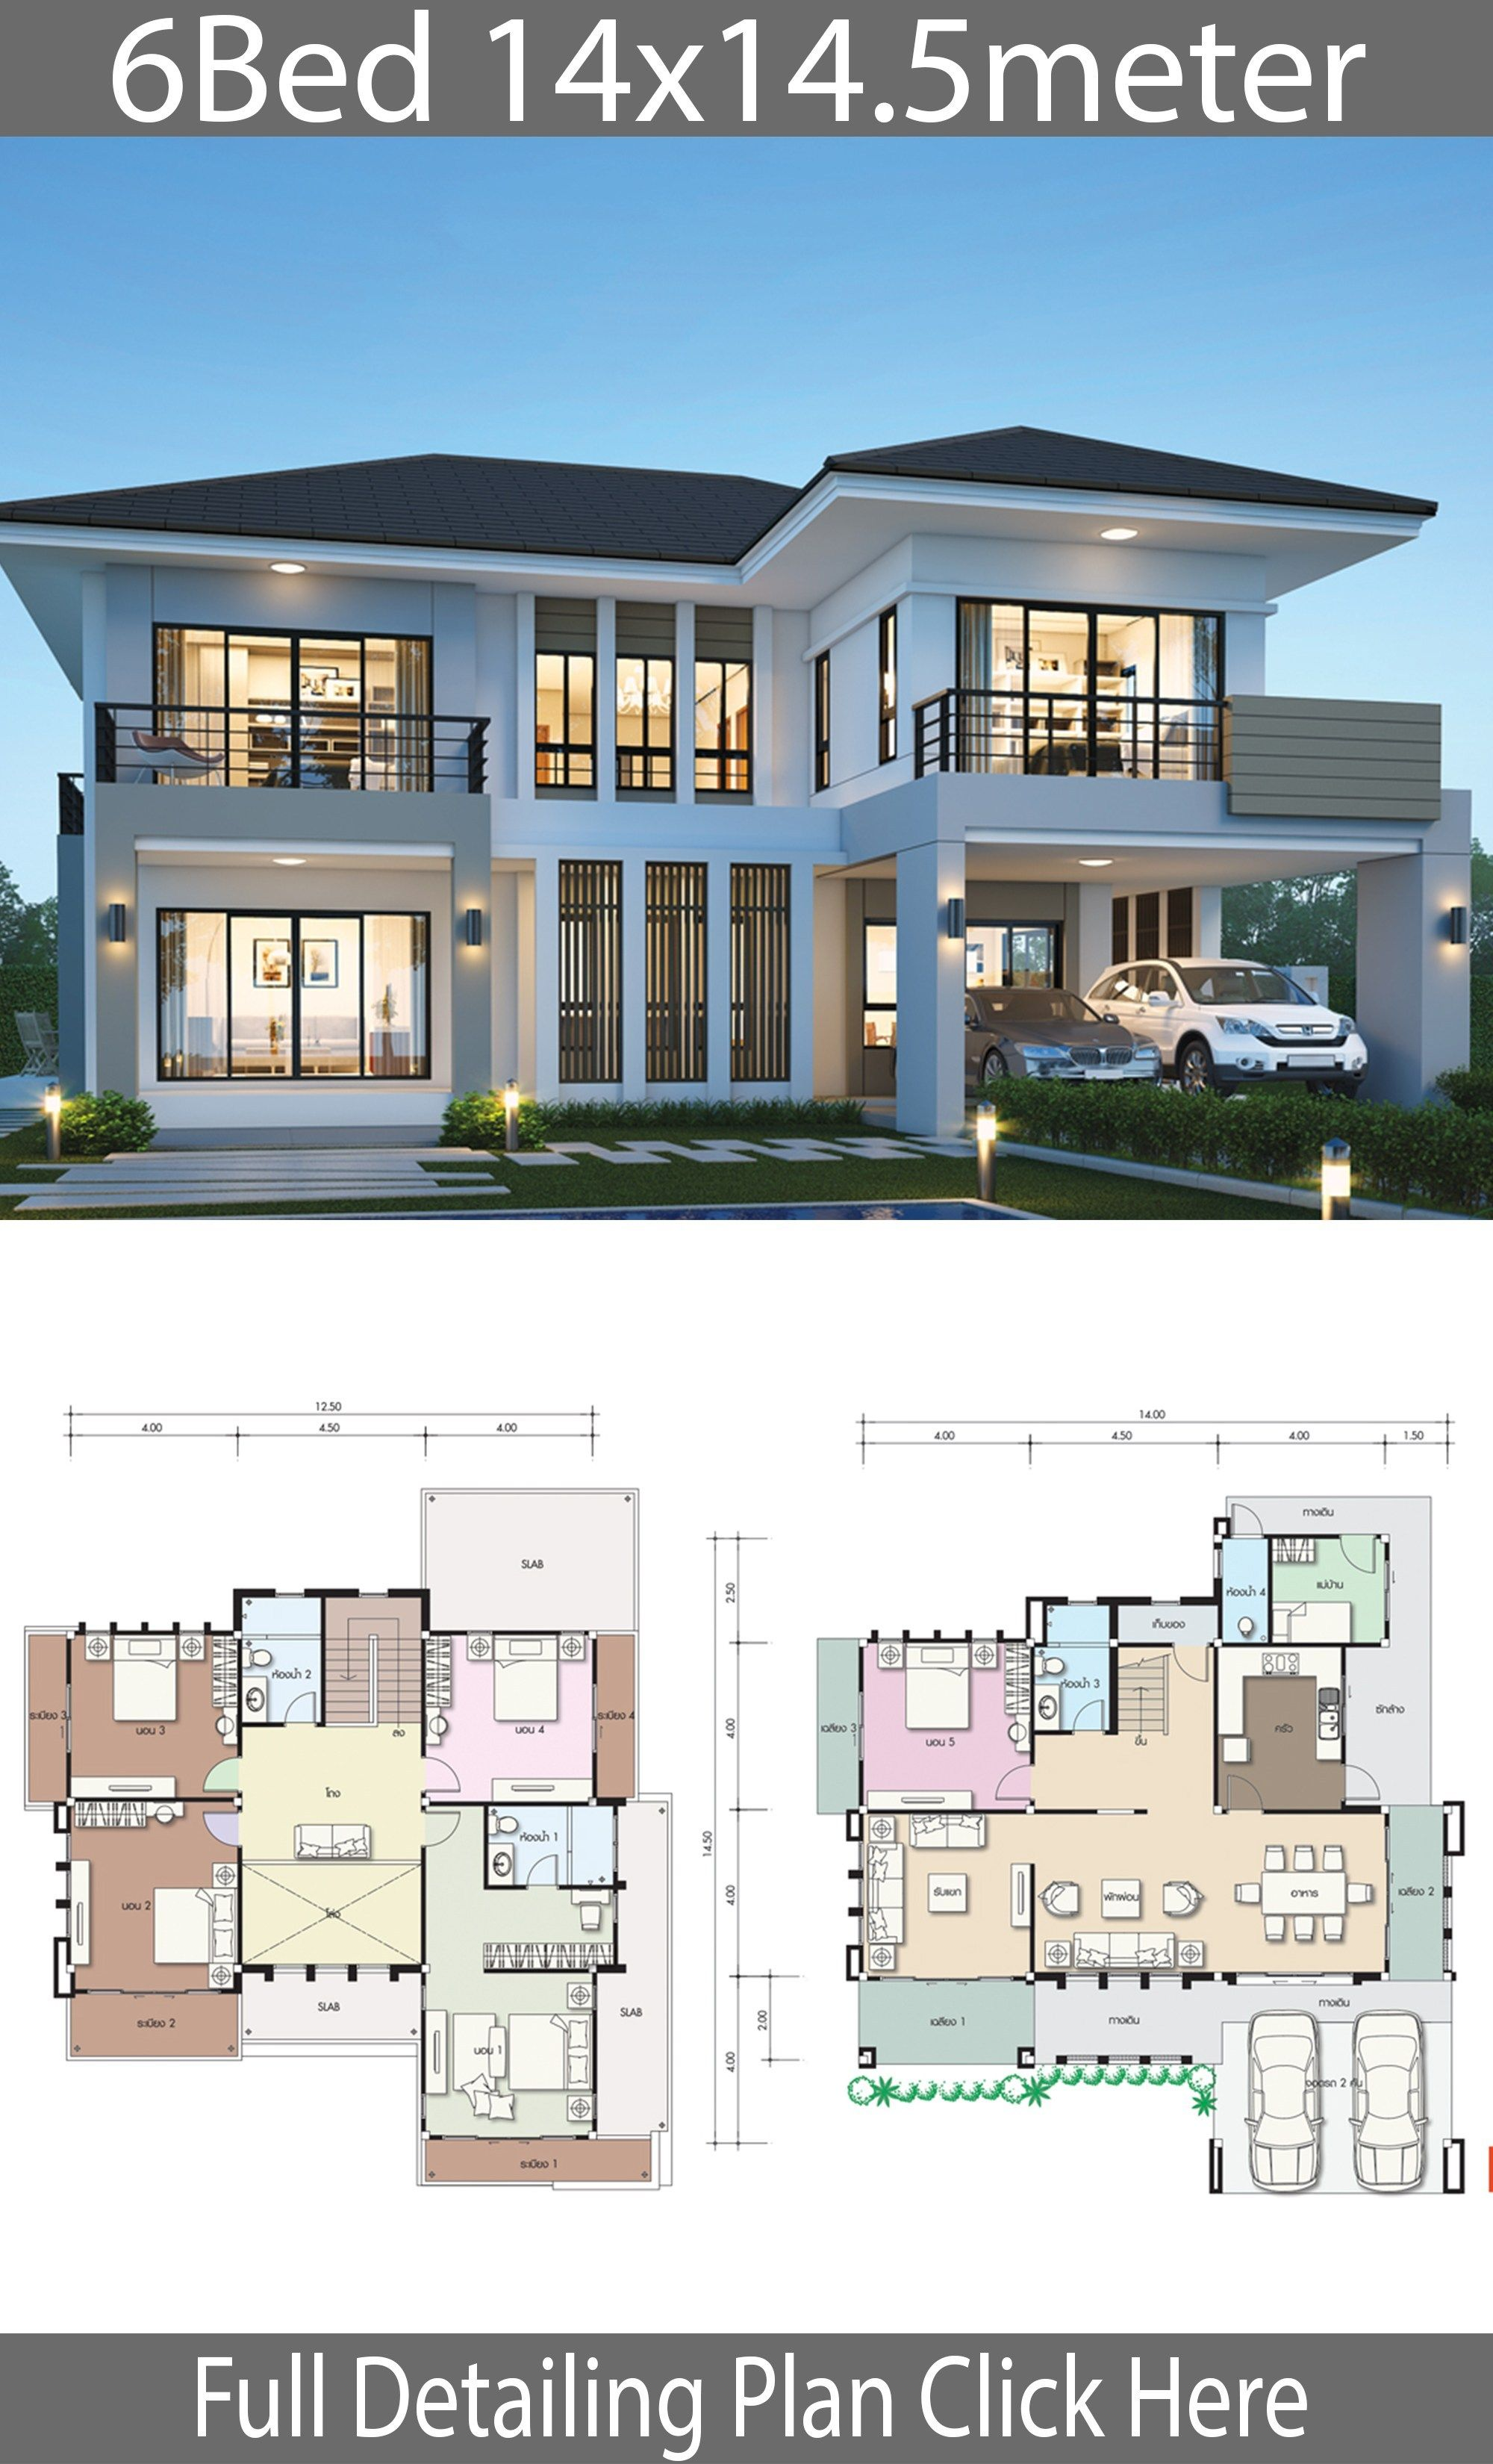 House Design Plan 14x14 5m With 6 Bedrooms Home Design With Plan Beautiful House Plans House Layout Plans Sims House Plans